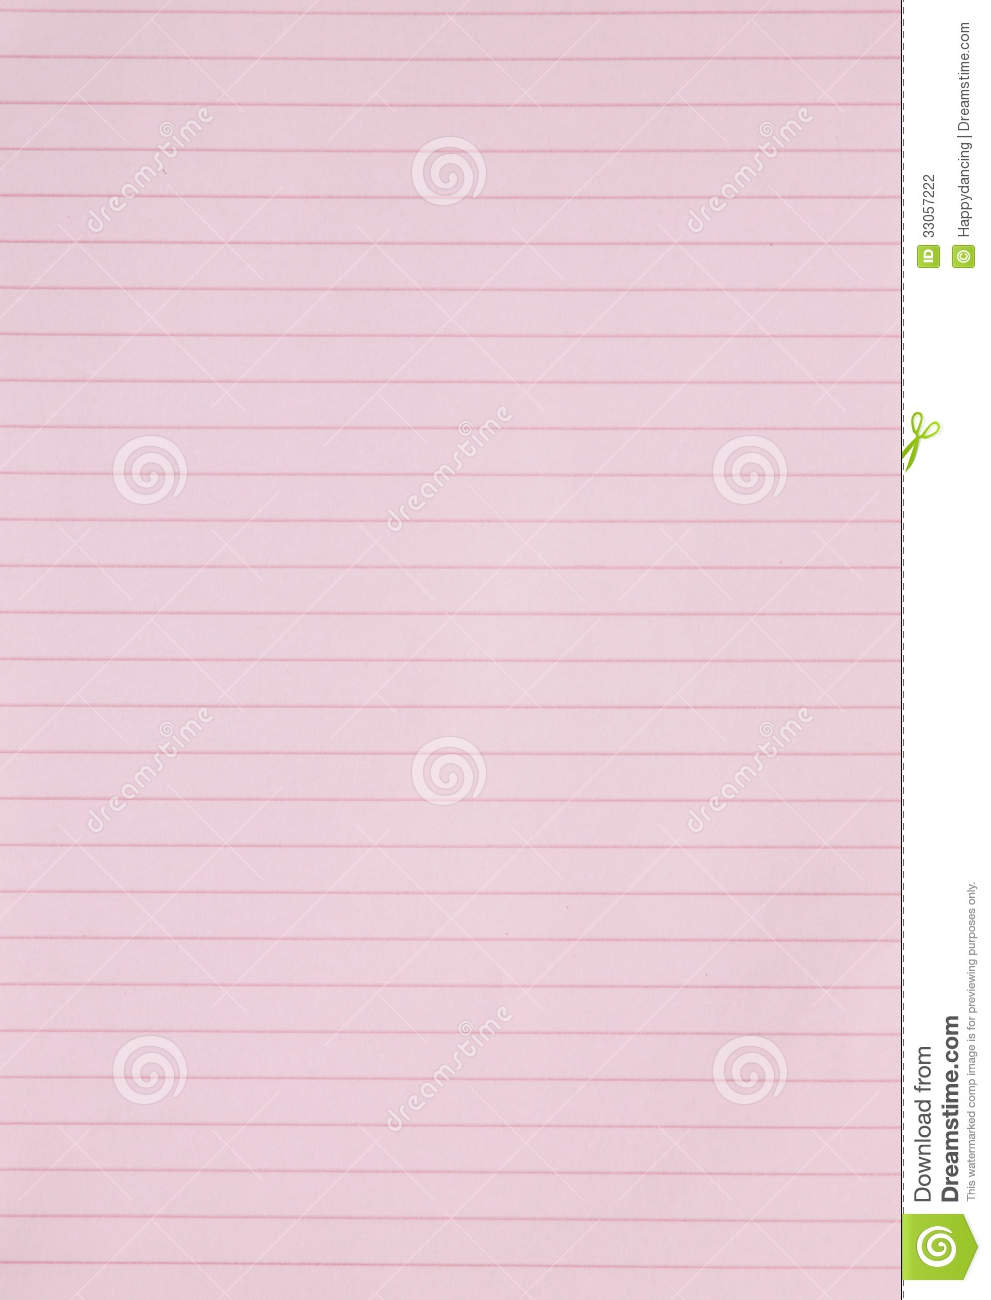 Blank Pink Lined Paper...U Letter Design Wallpaper